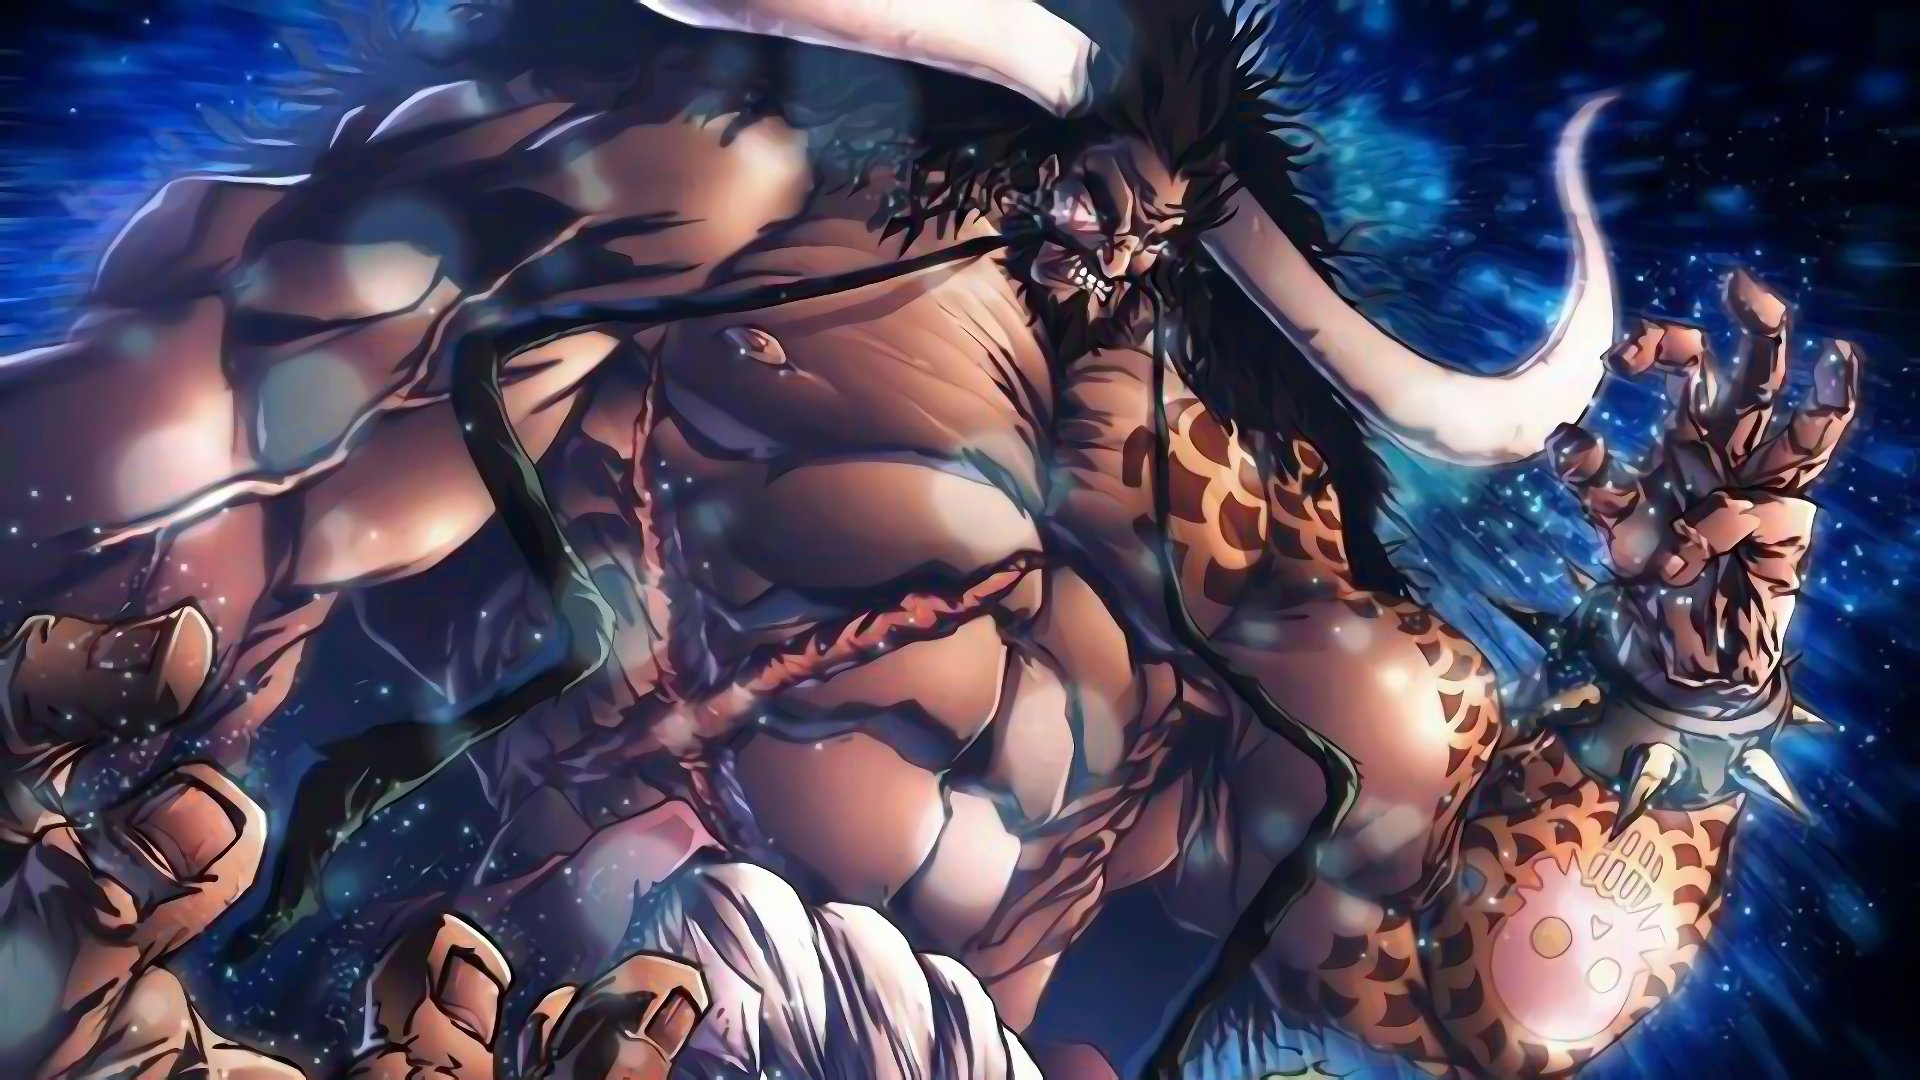 16 4k Ultra Hd Kaido One Piece Wallpapers Background Images Wallpaper Abyss